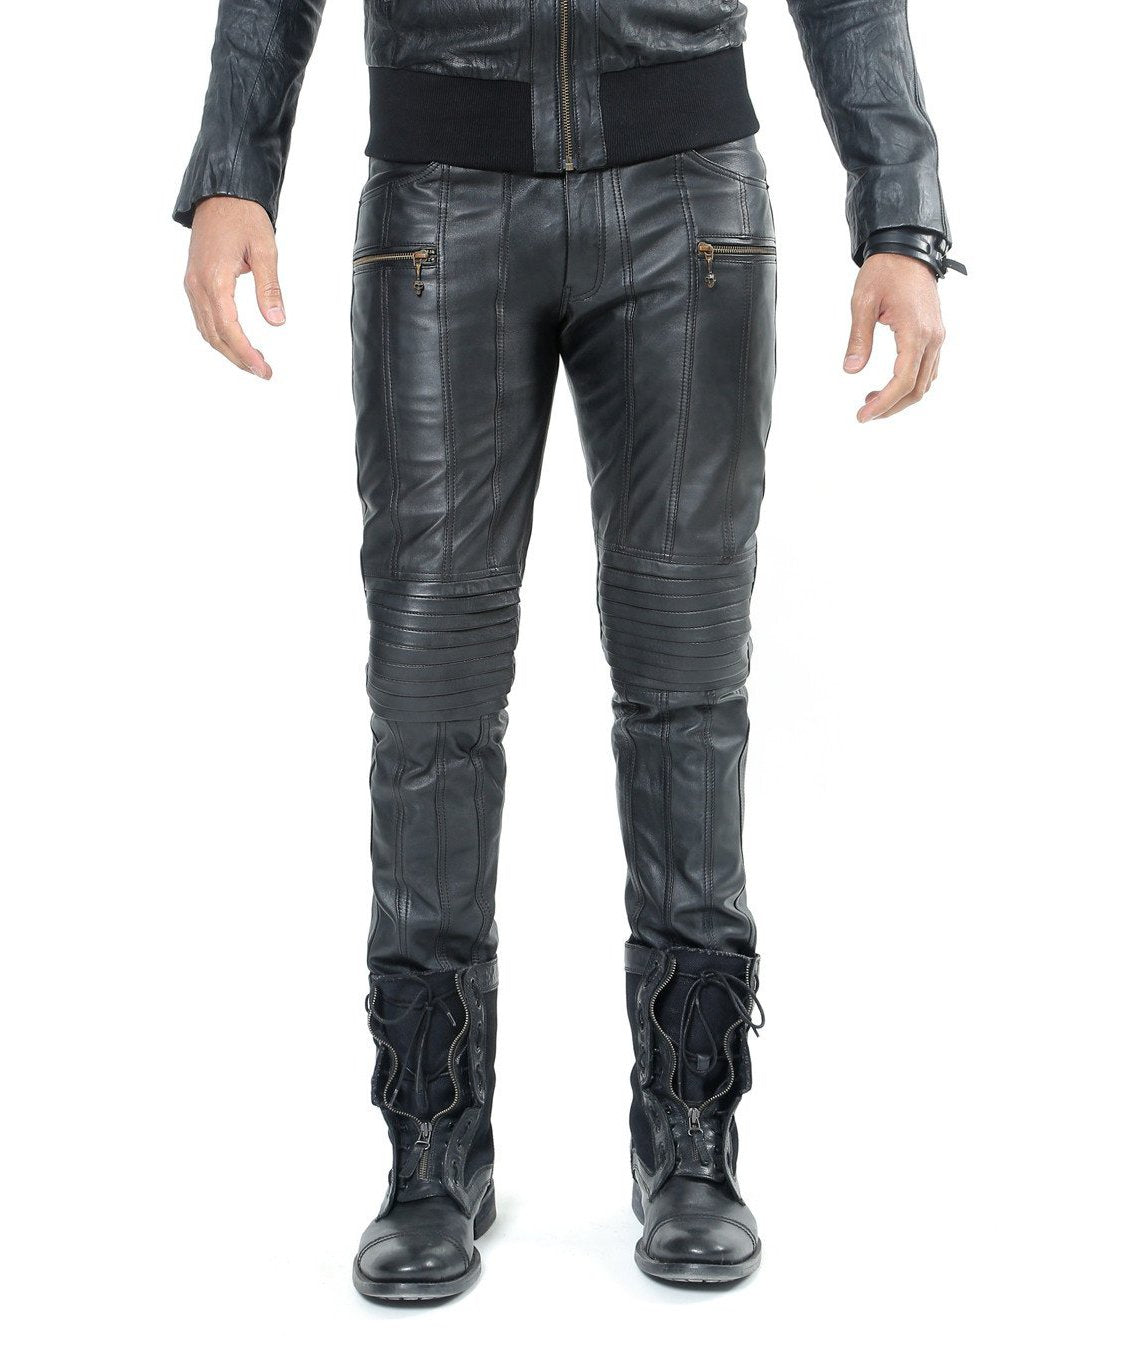 Leather Revolution Jeans